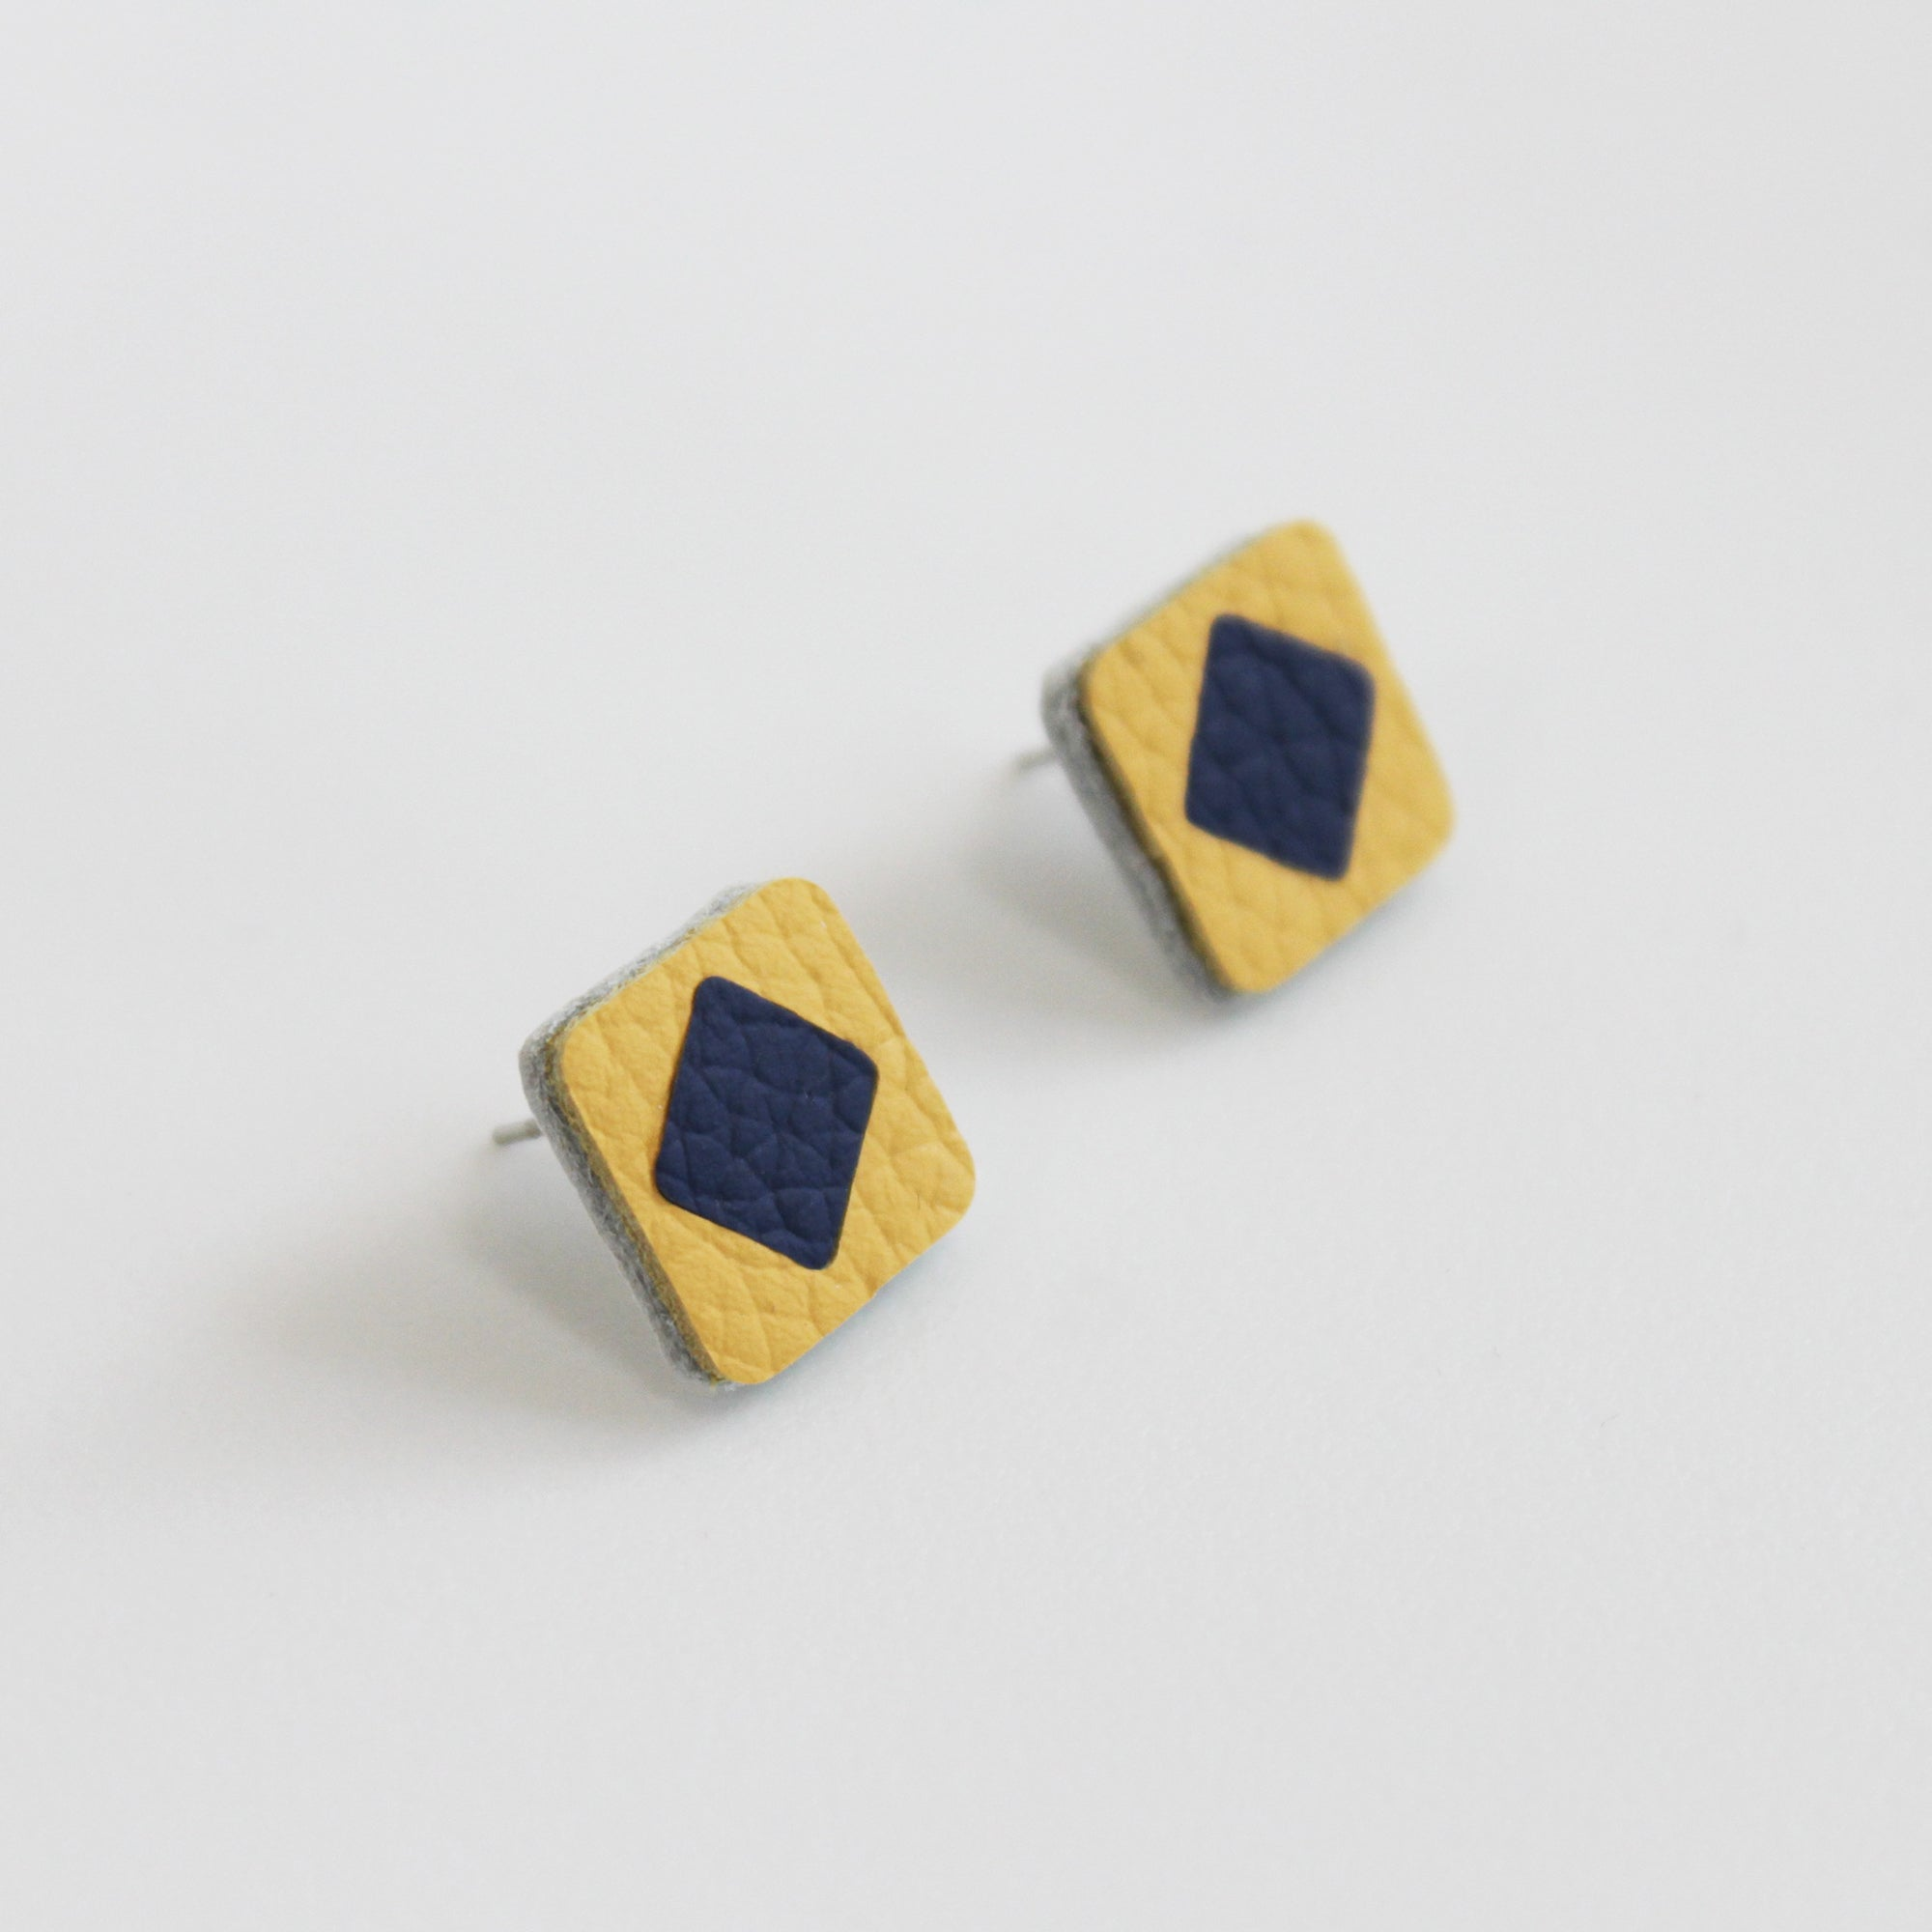 Yellow and navy leather stud earring - Inspired